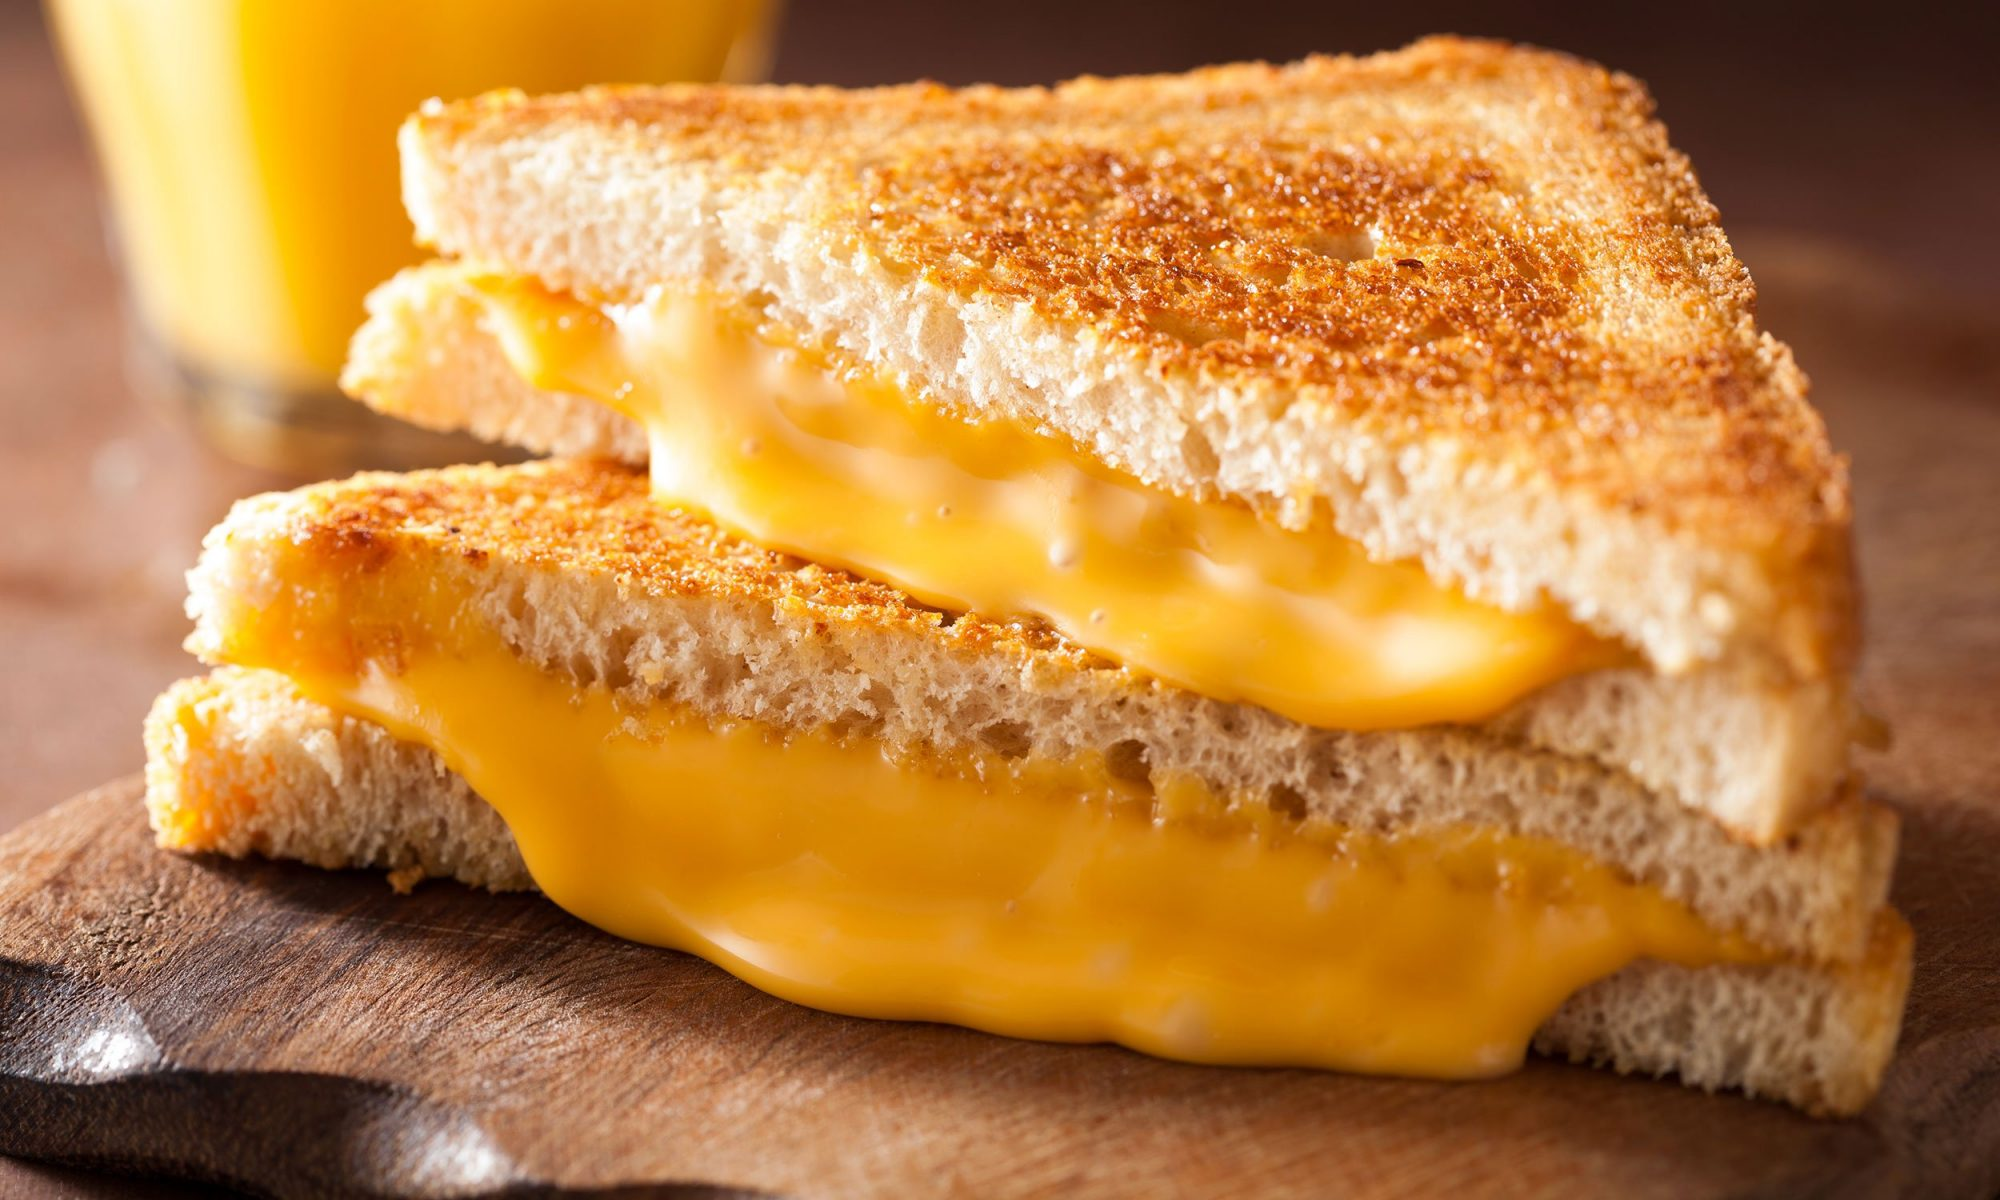 Why Some Cheeses Melt Better Than Others, According to Science